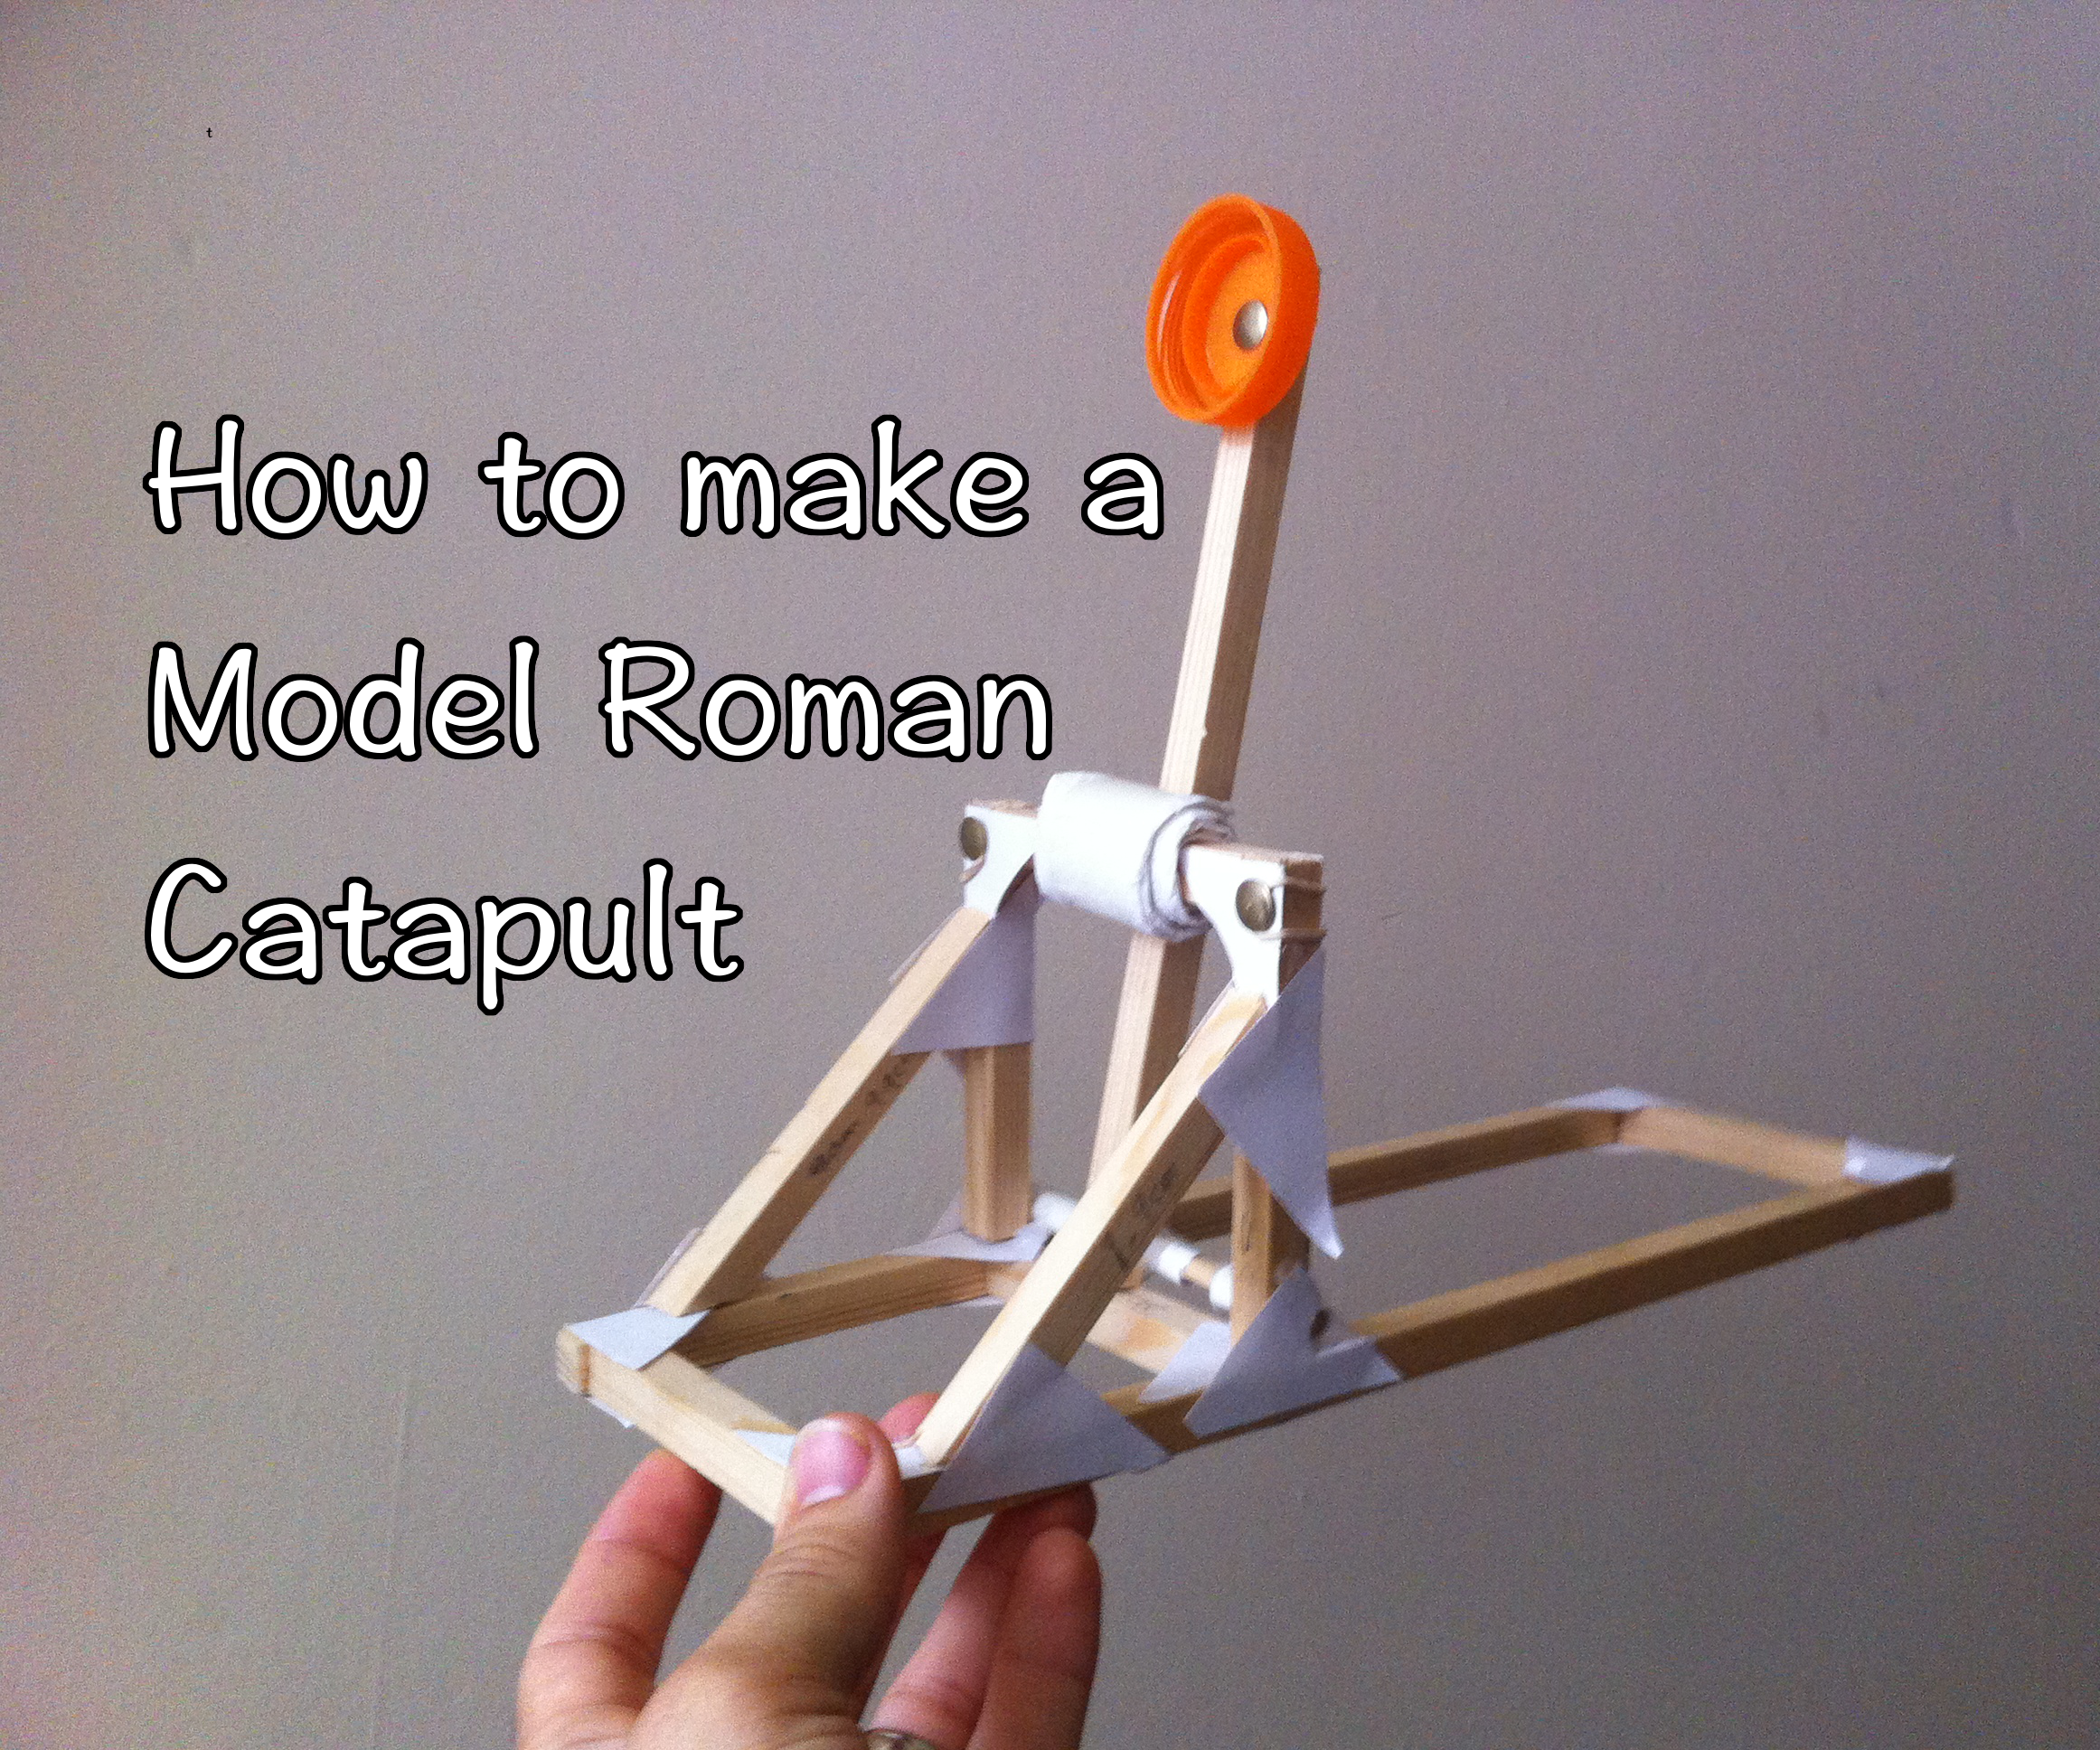 School DT projects: Model Roman catapult